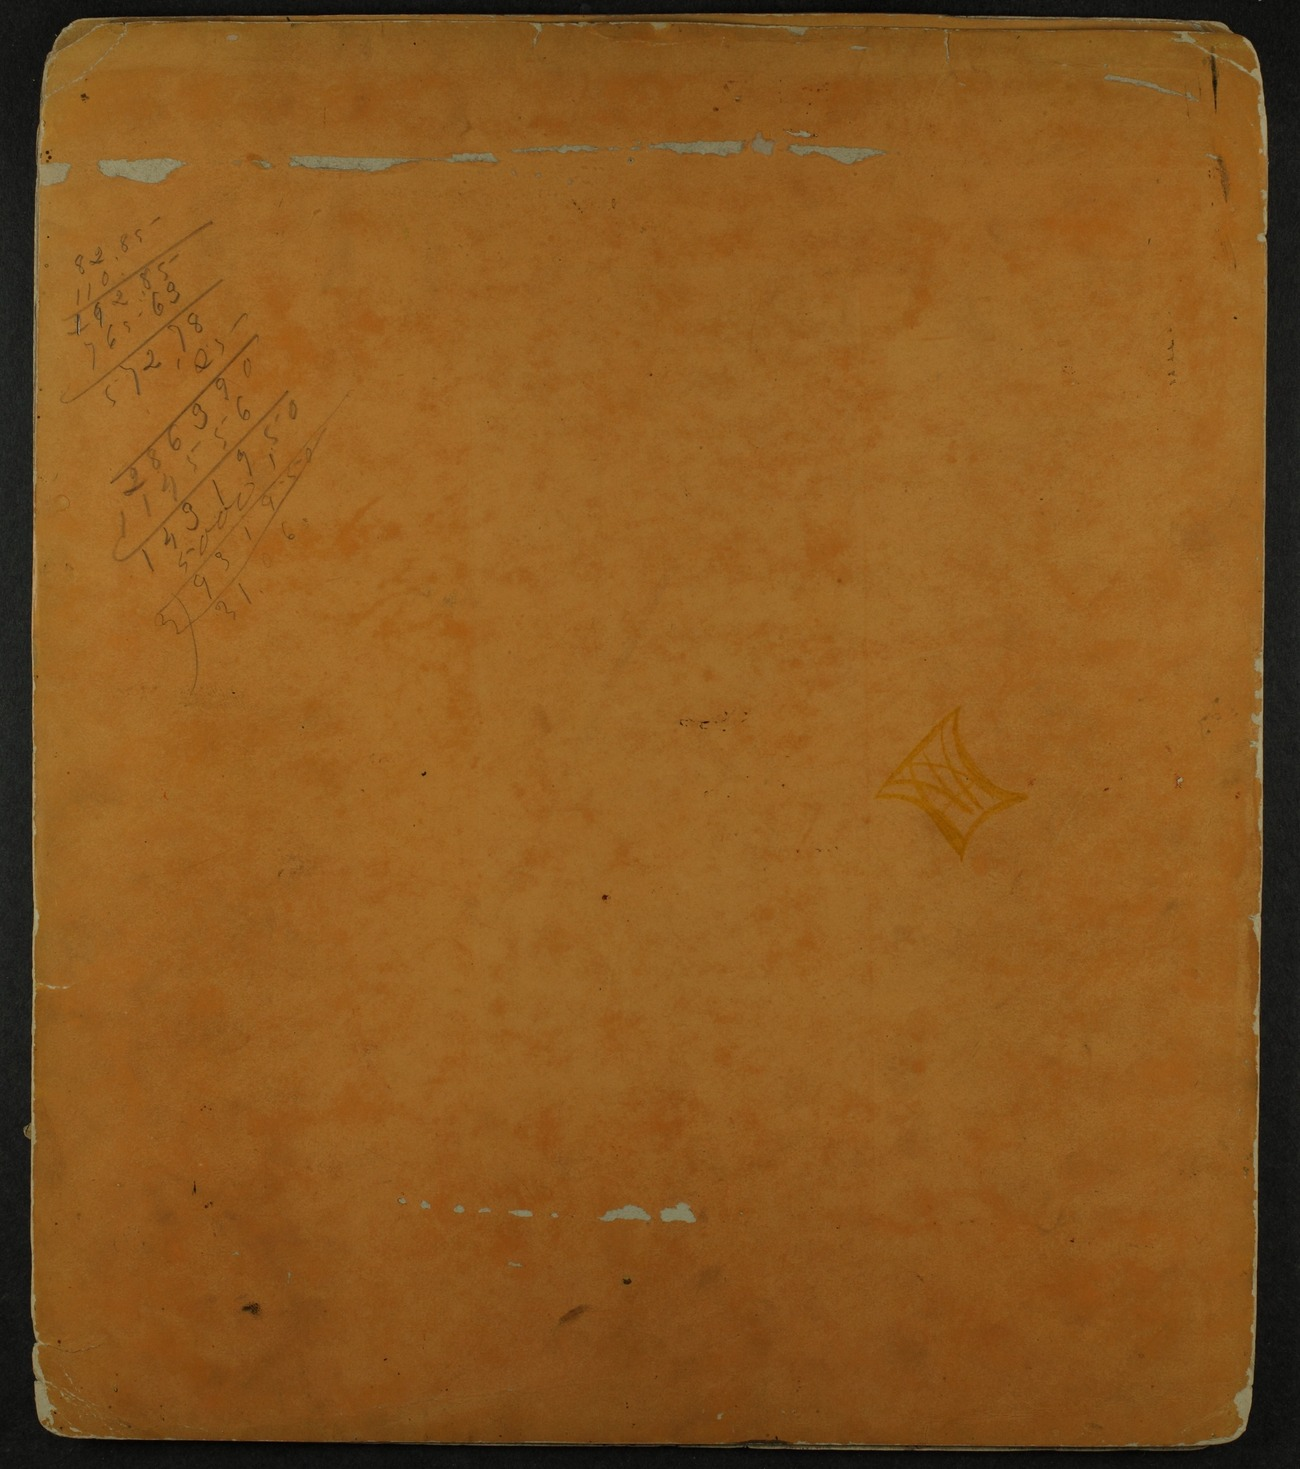 Shawnee Indian reservation plat maps of 1854 - 7